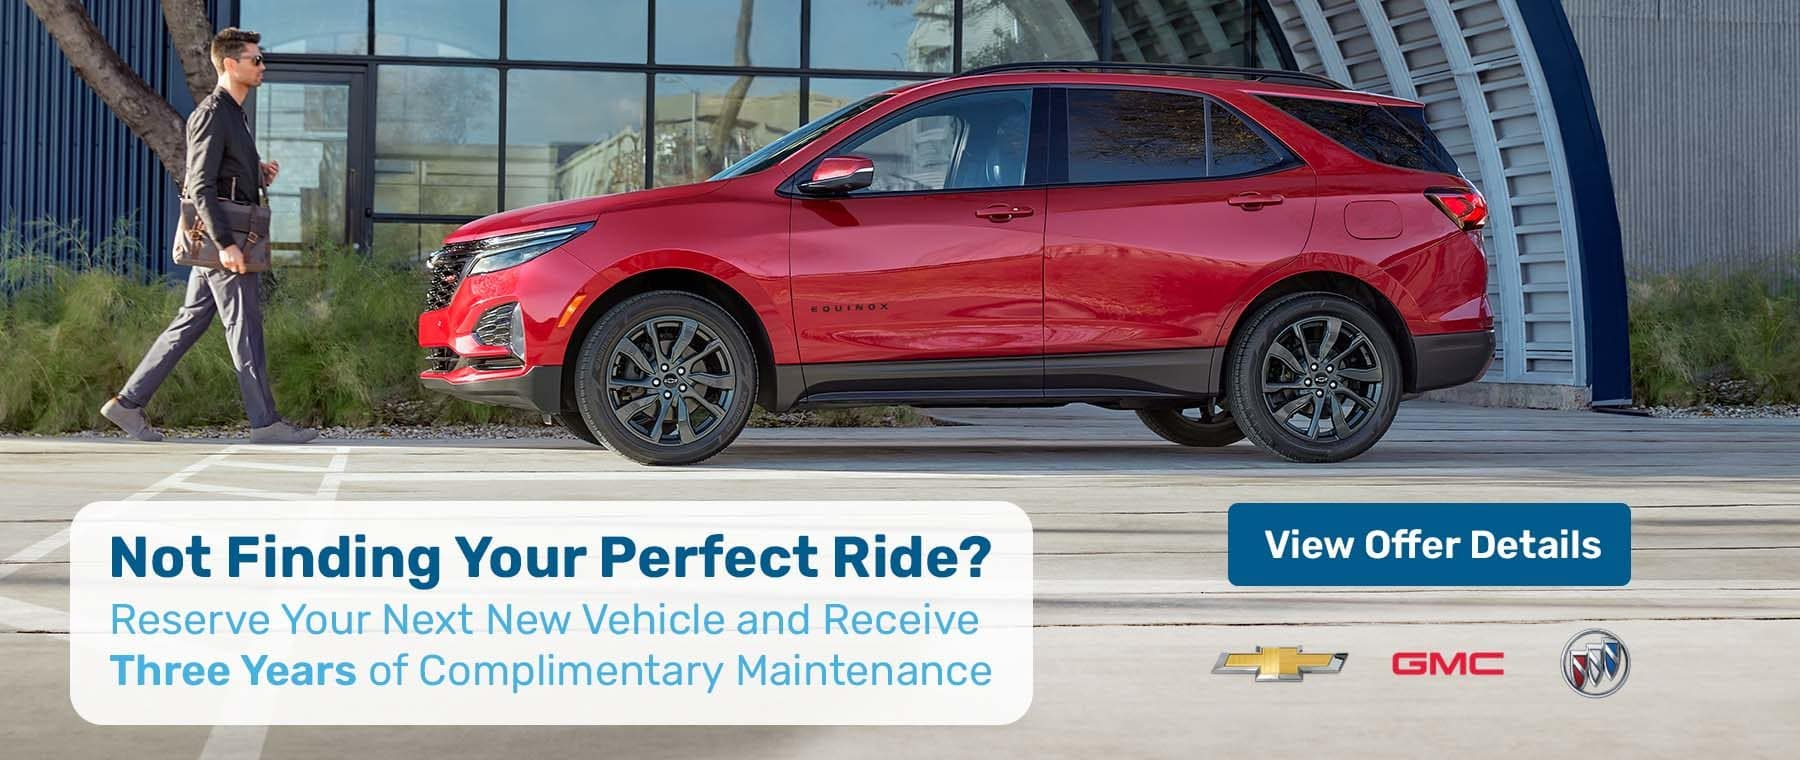 Reserve Your Next Chevy, Buick, or GMC and Receive Three Years of Complimentary Maintenance